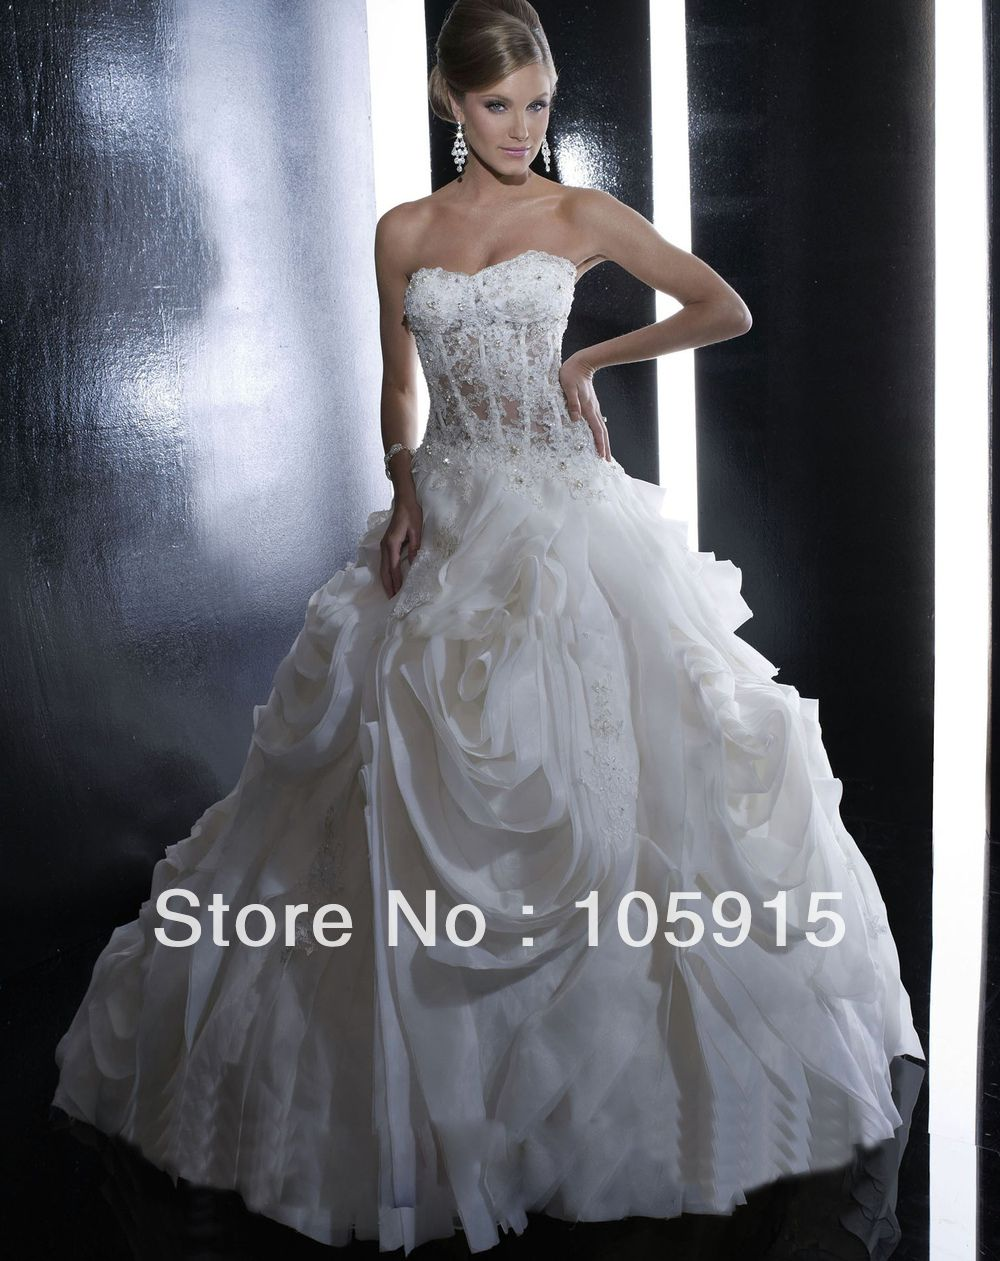 Mini wedding dresses  Find More Wedding Dresses Information about Sexy See Through White